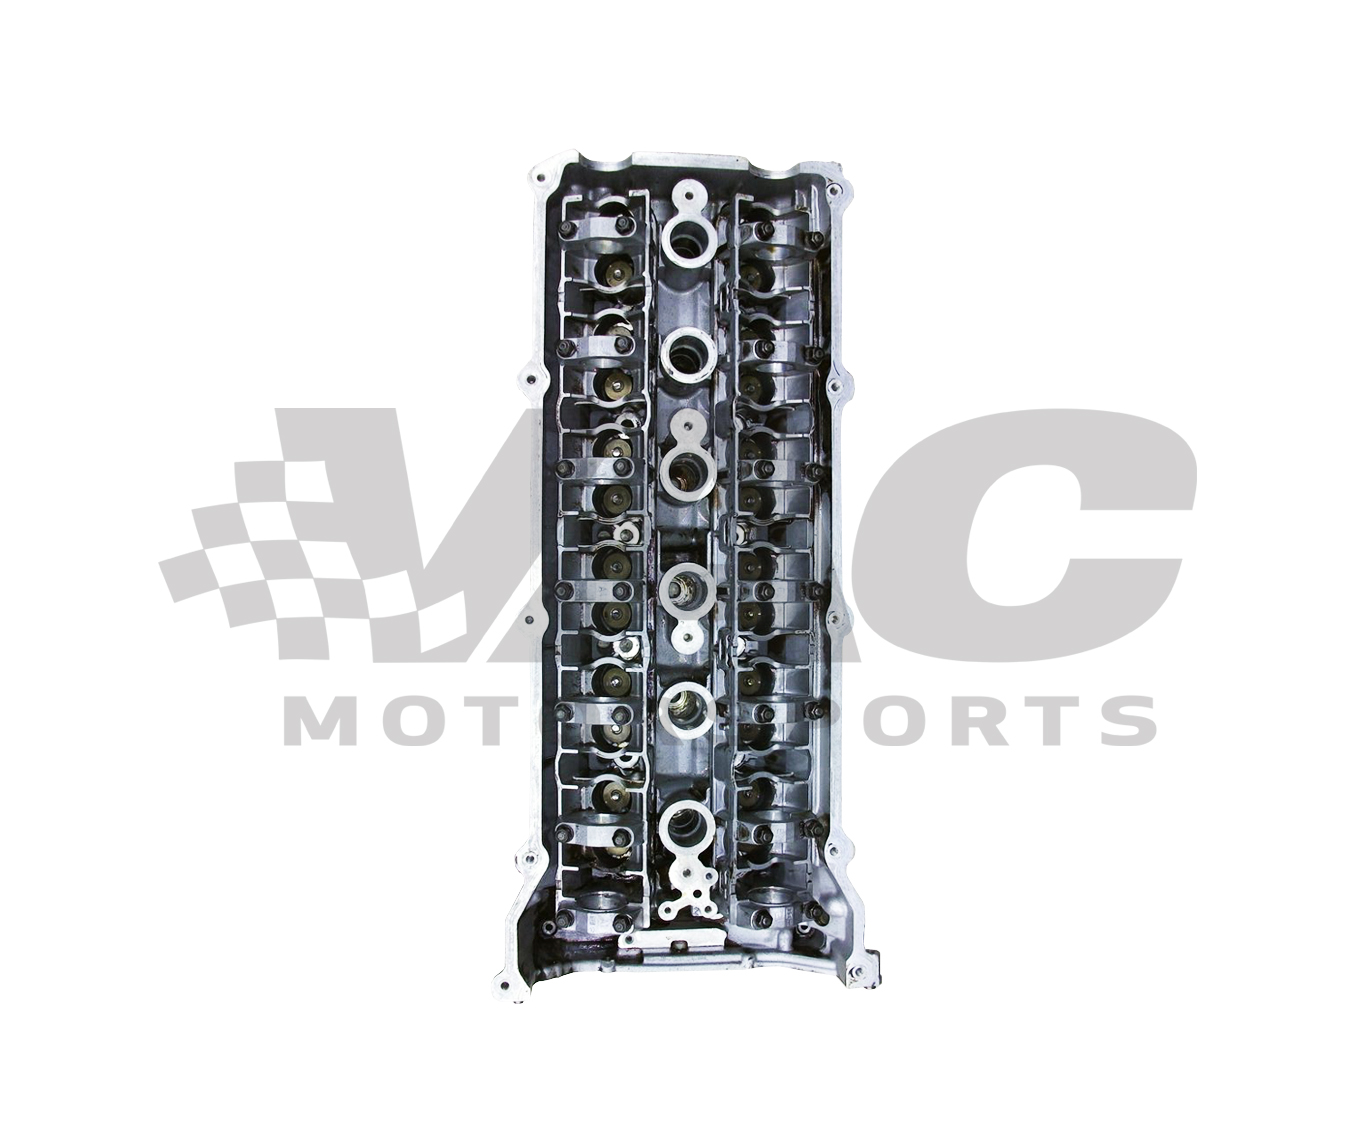 VAC Stage 2 Performance Cylinder Head (BMW M52TU M54) MAIN